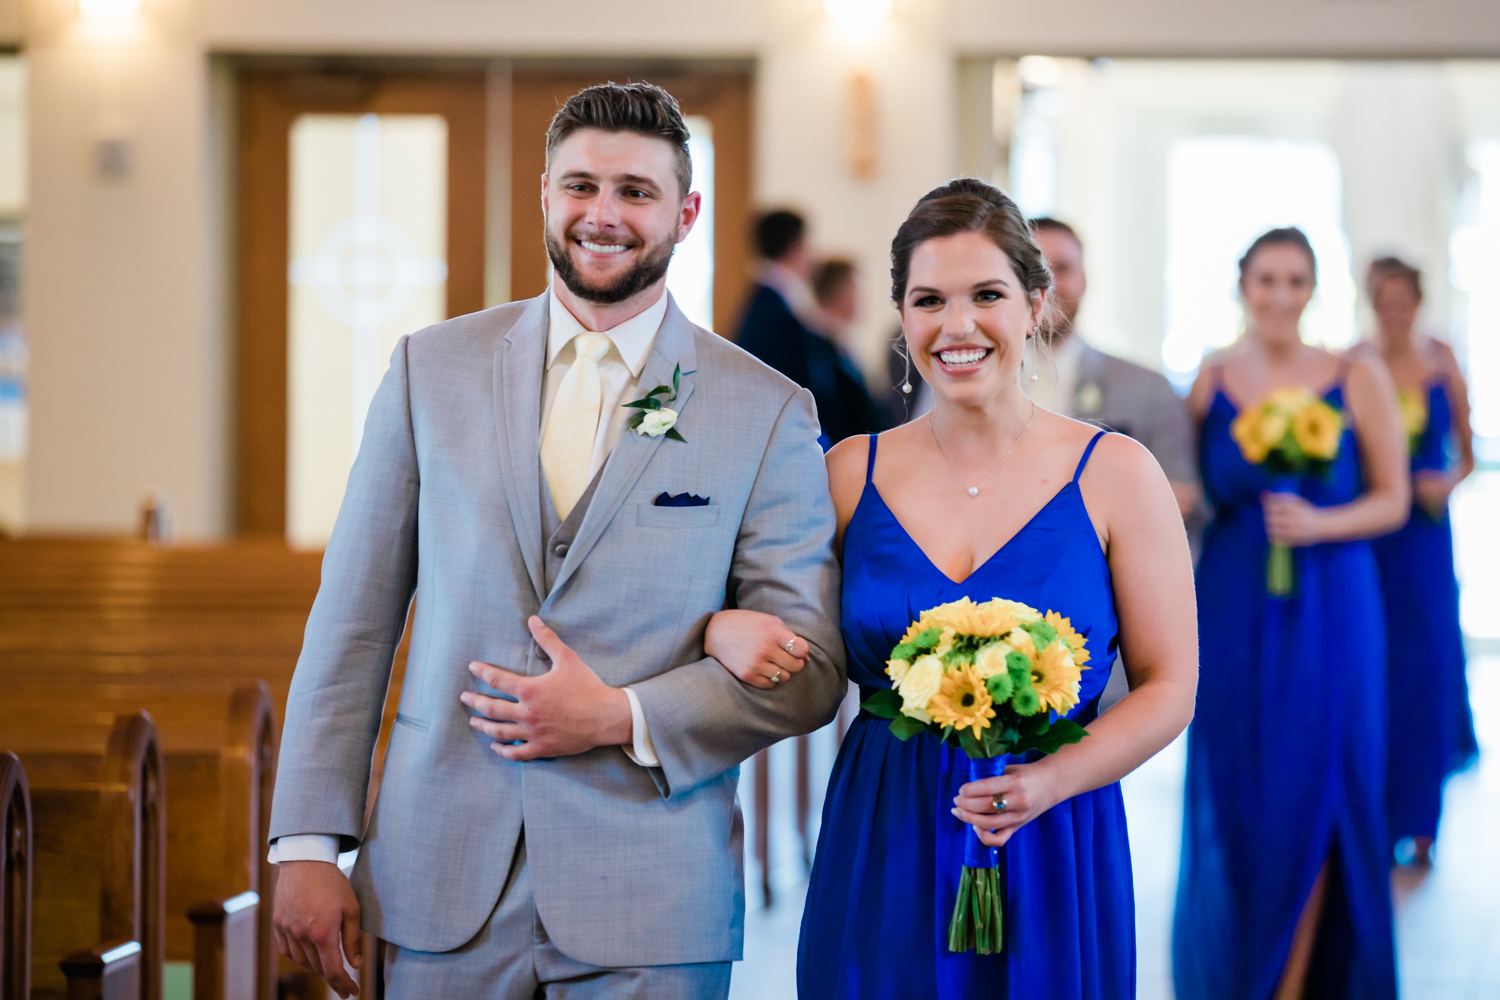 top rated wedding photographer in maryland - husband and wife photo video team